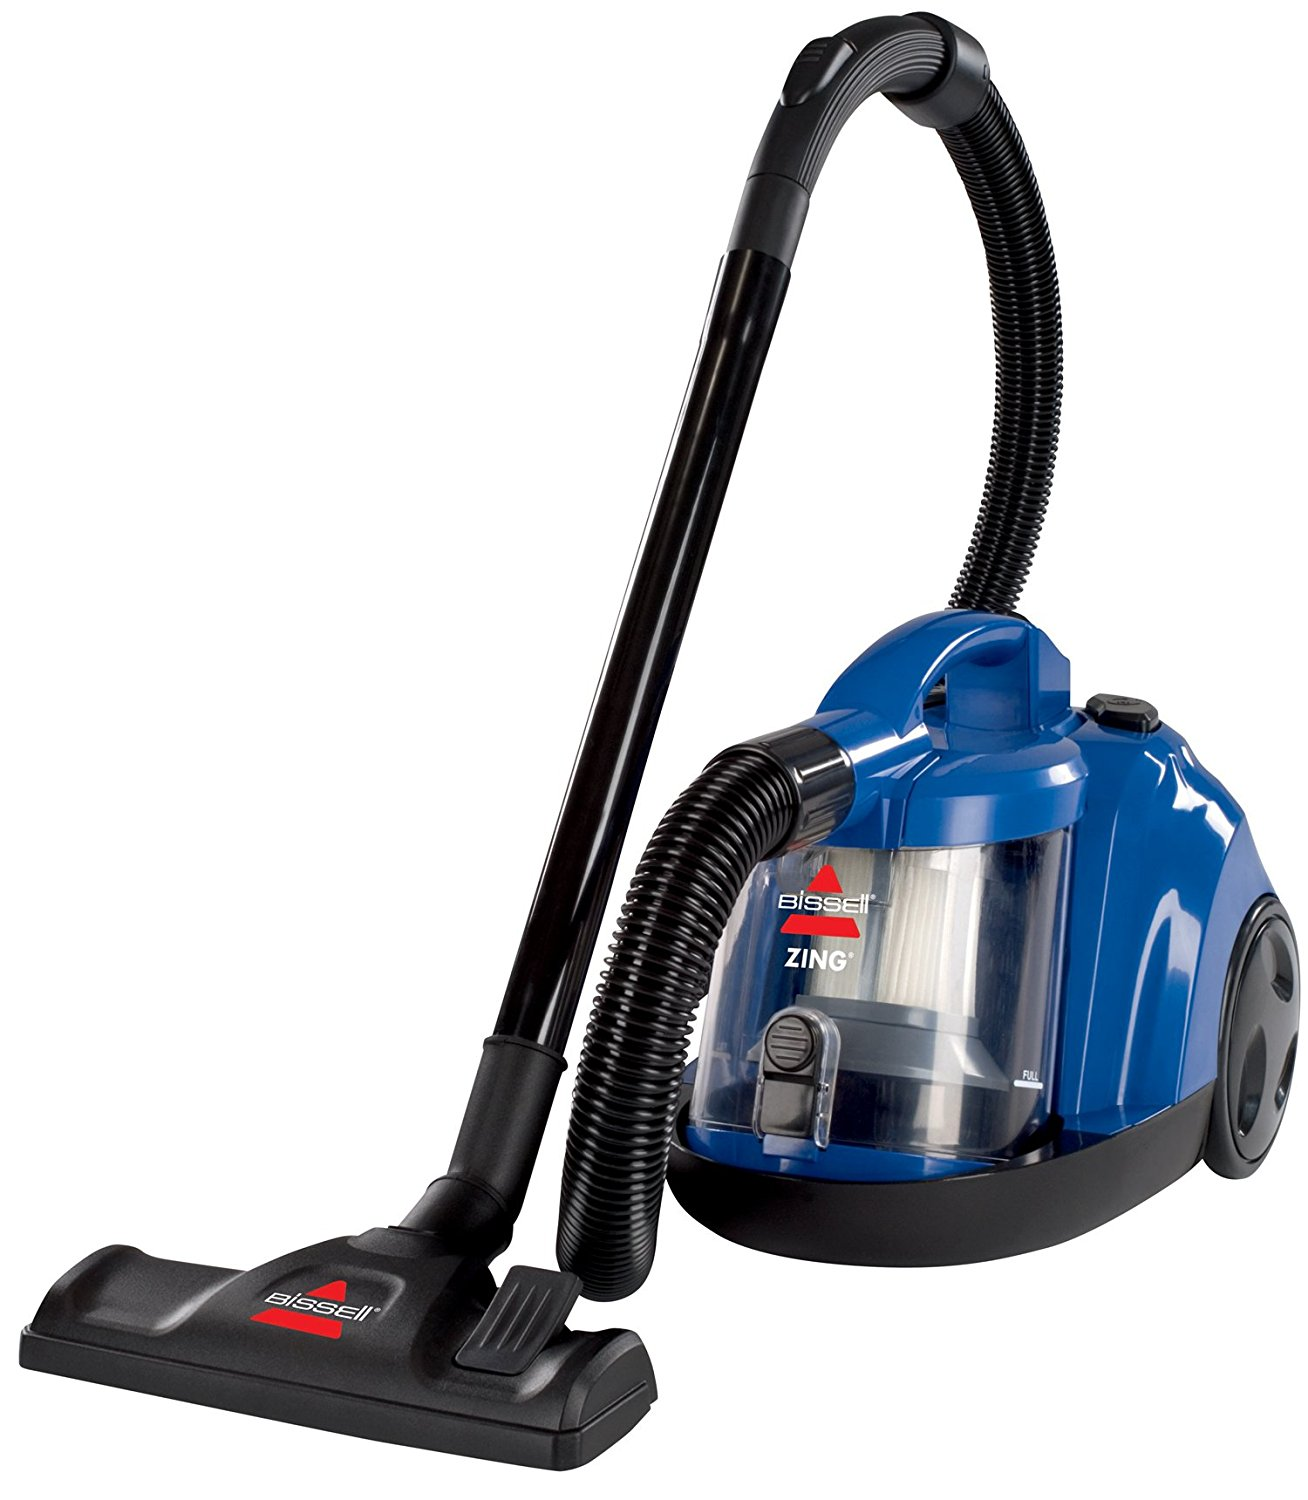 use Bissell Zing Rewind Bagless Canister Vacuum